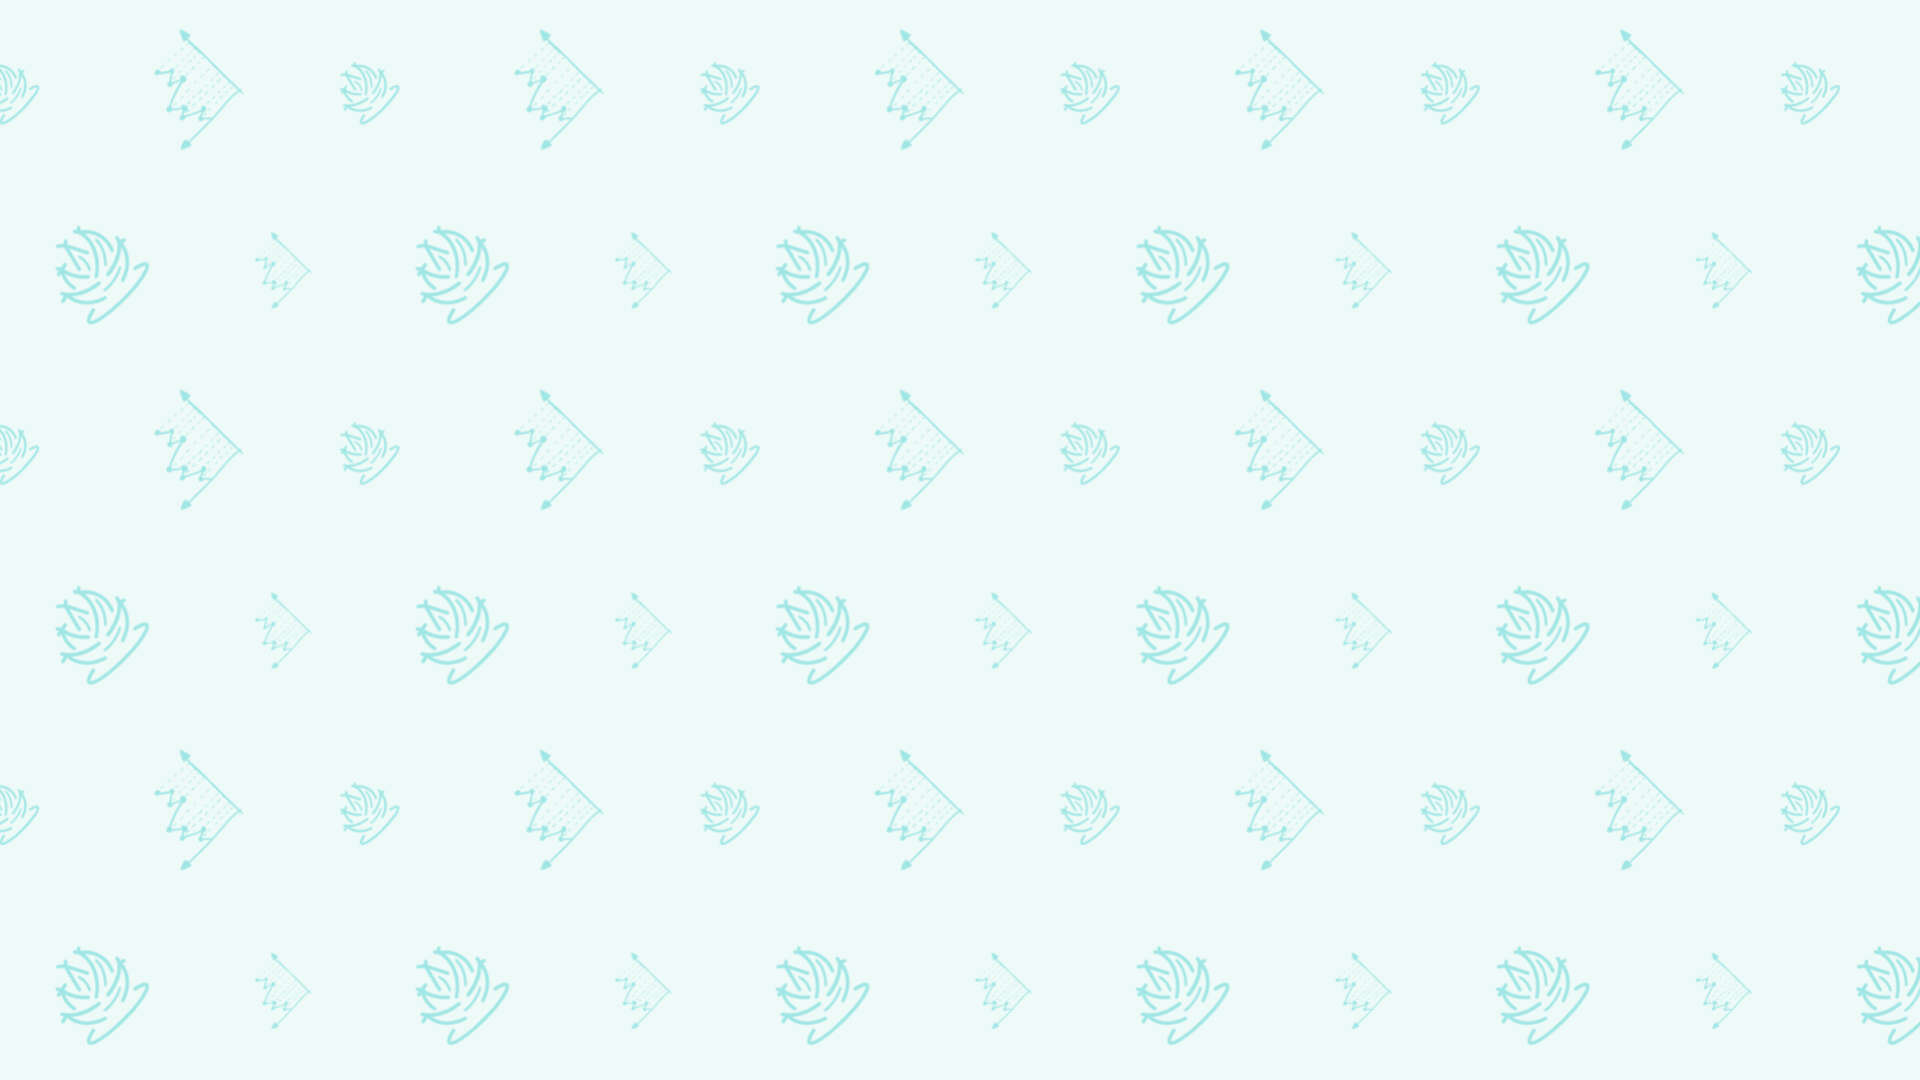 Blue,                Green,                Aqua,                Pattern,                Turquoise,                Design,                Line,                Wallpaper,                Font,                Sky,                Zig,                Spiked,                Graphic,                 Free Image